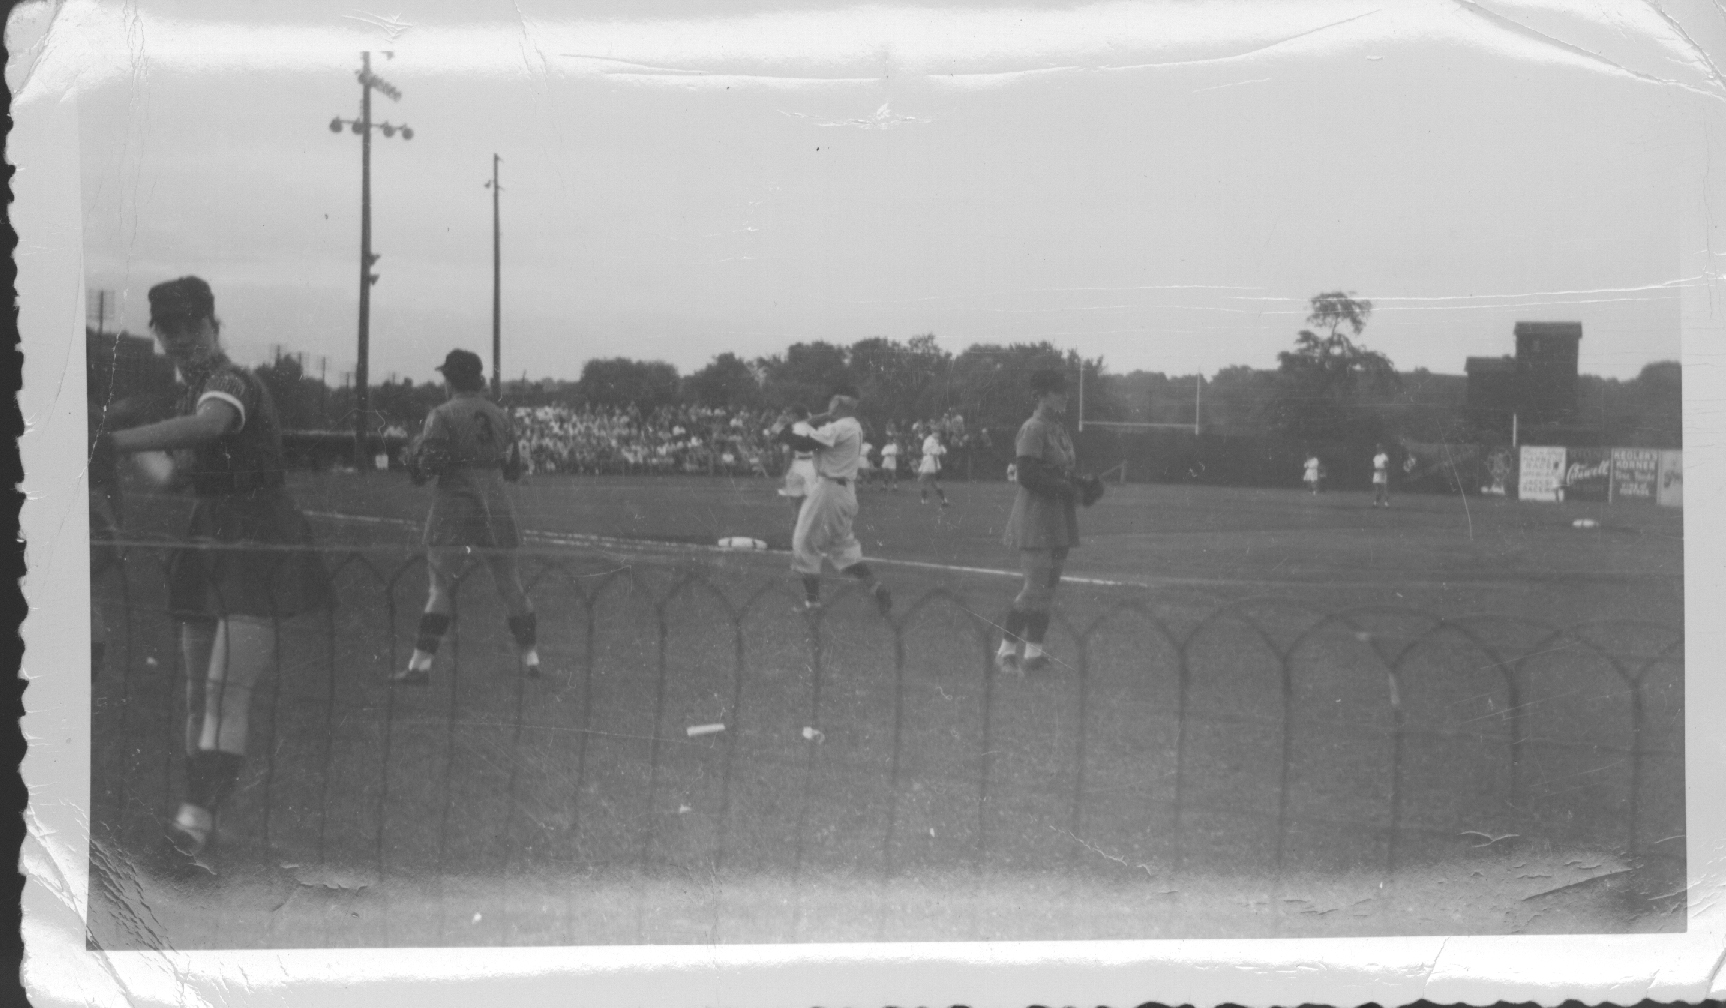 The Kalamazoo Lassies playing on Catholic Athletic Association Field (Courtesy of The History Museum, South Bend, Indiana)